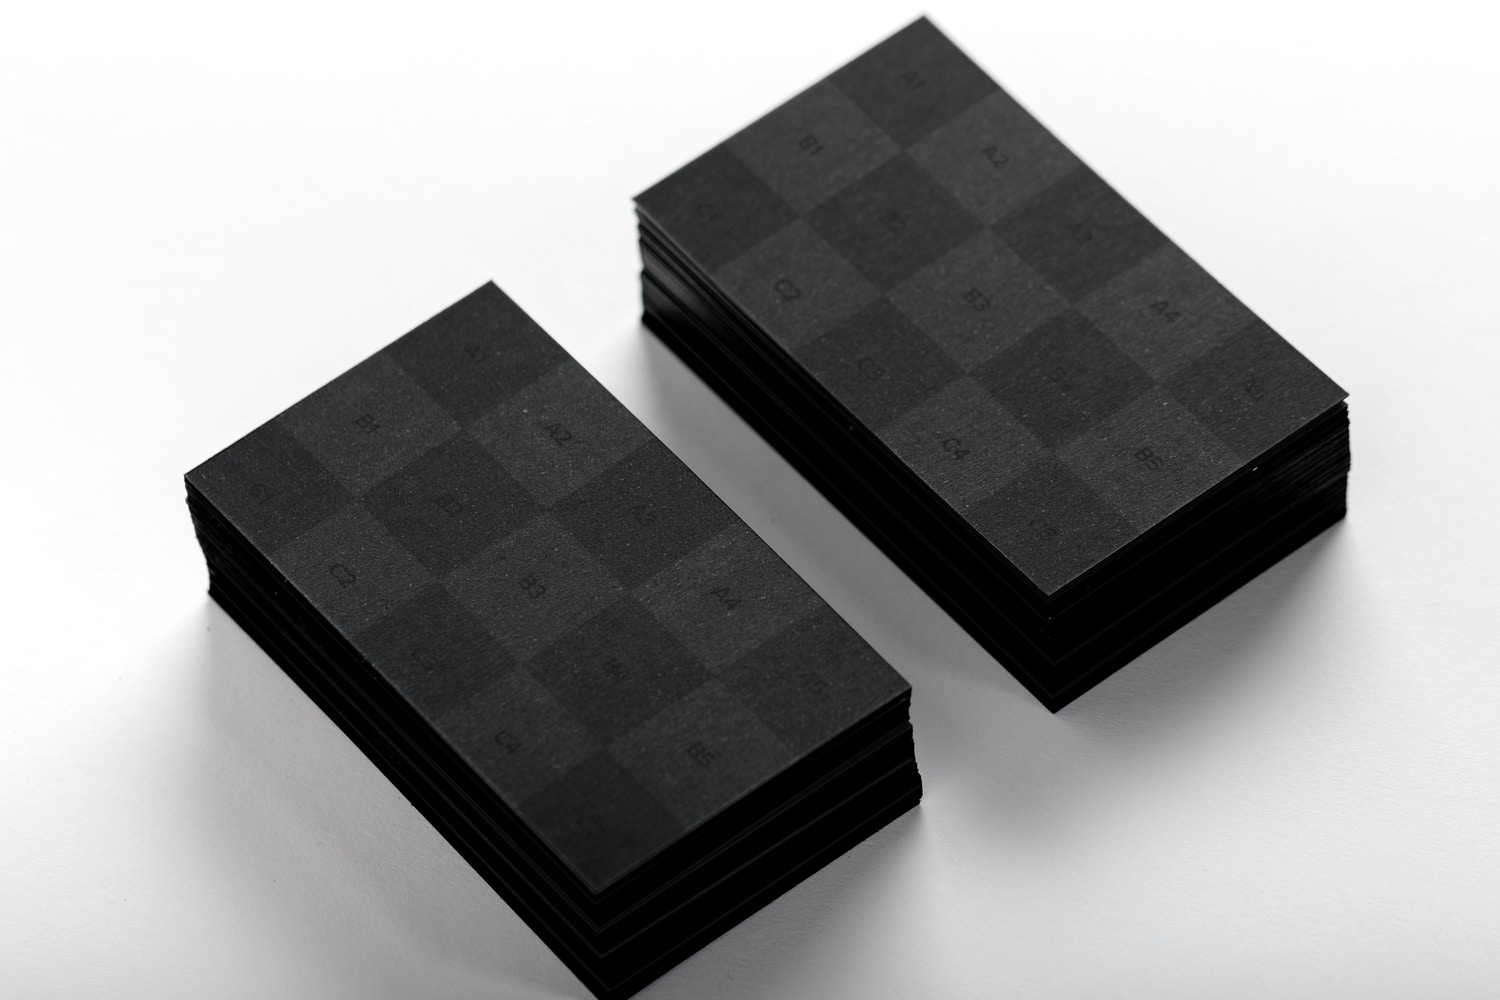 Black Business Cards Mockup 01 (2) por Original Mockups en Original Mockups